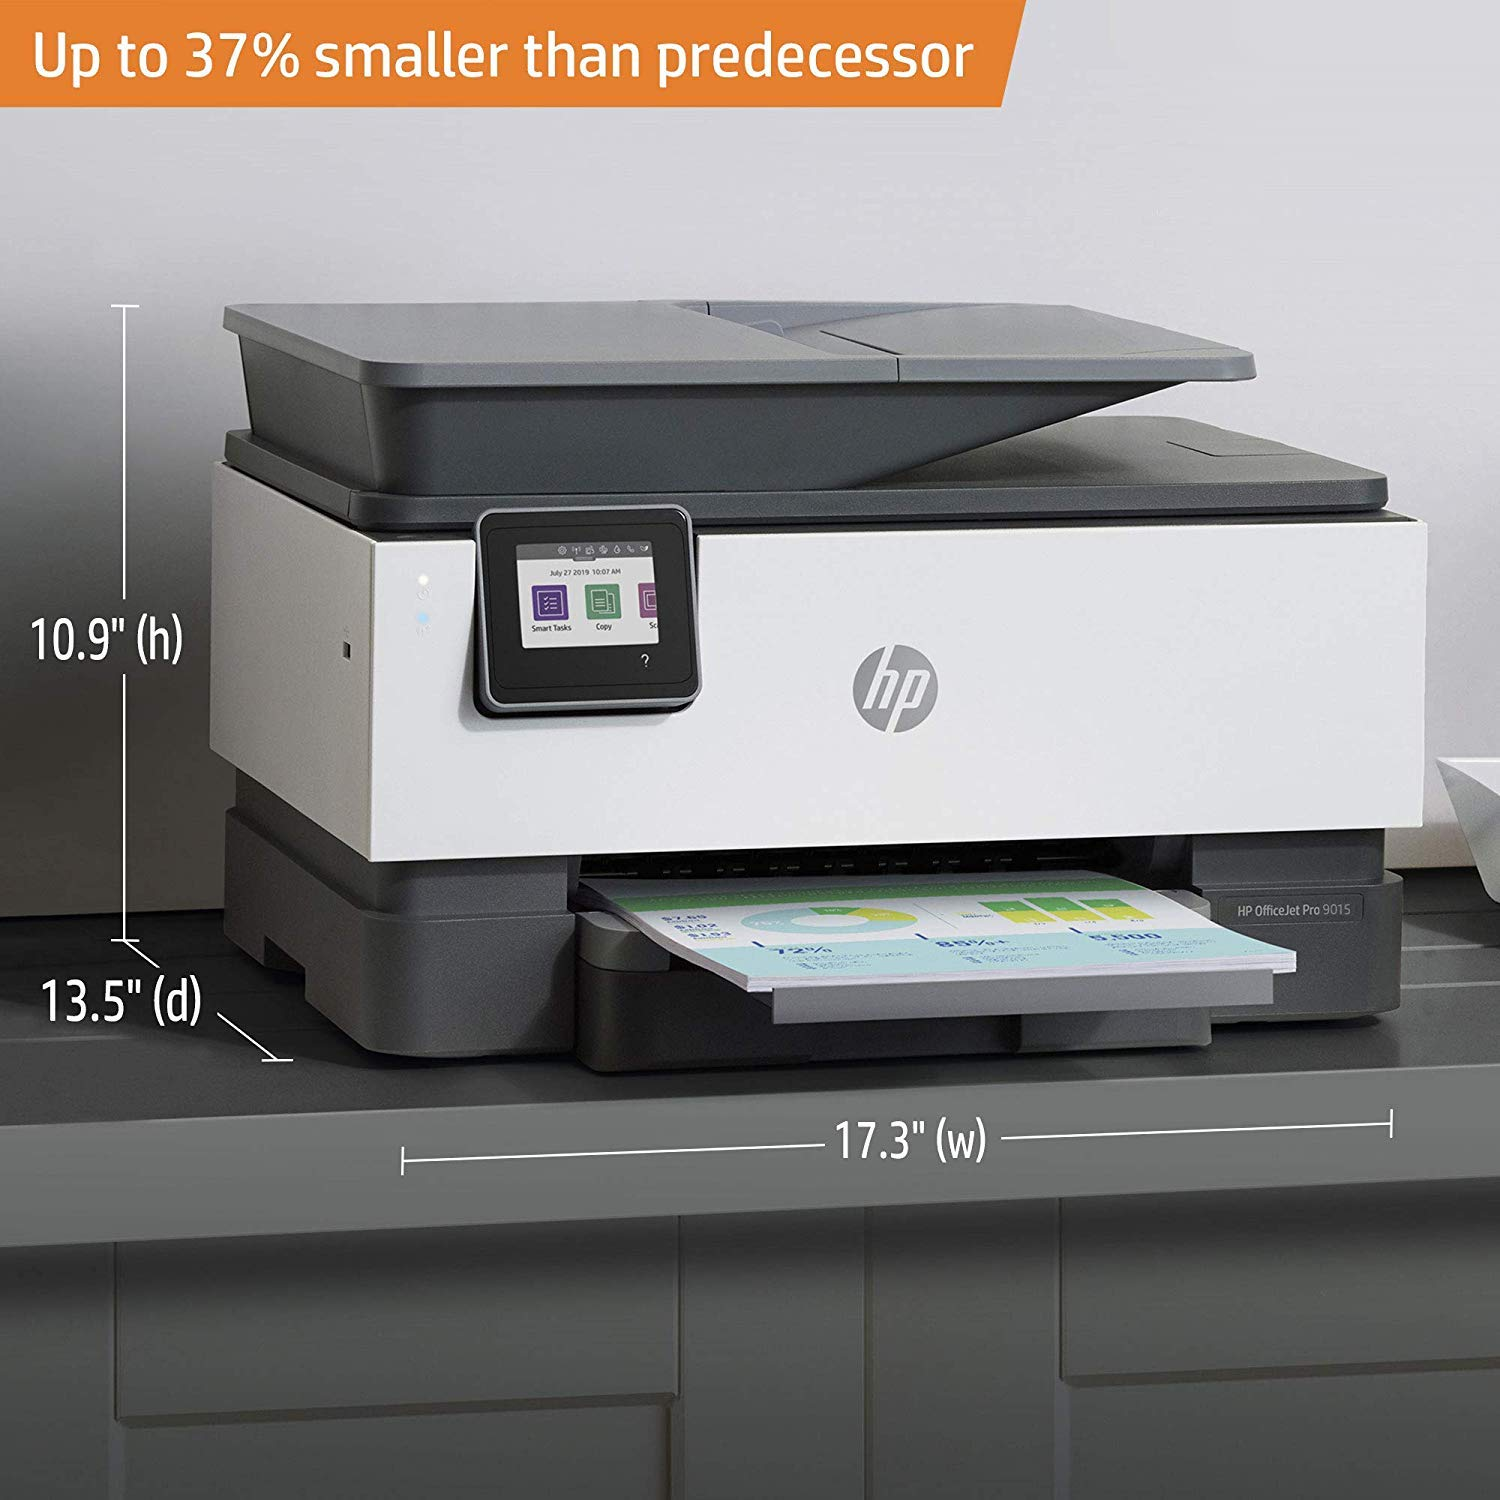 HP OfficeJet Pro 9015 All-in-One Wireless Printer, with Smart Tasks for Smart Office Productivity & Never Run Out of Ink with HP Instant Ink (1KR42A) by HP (Image #13)